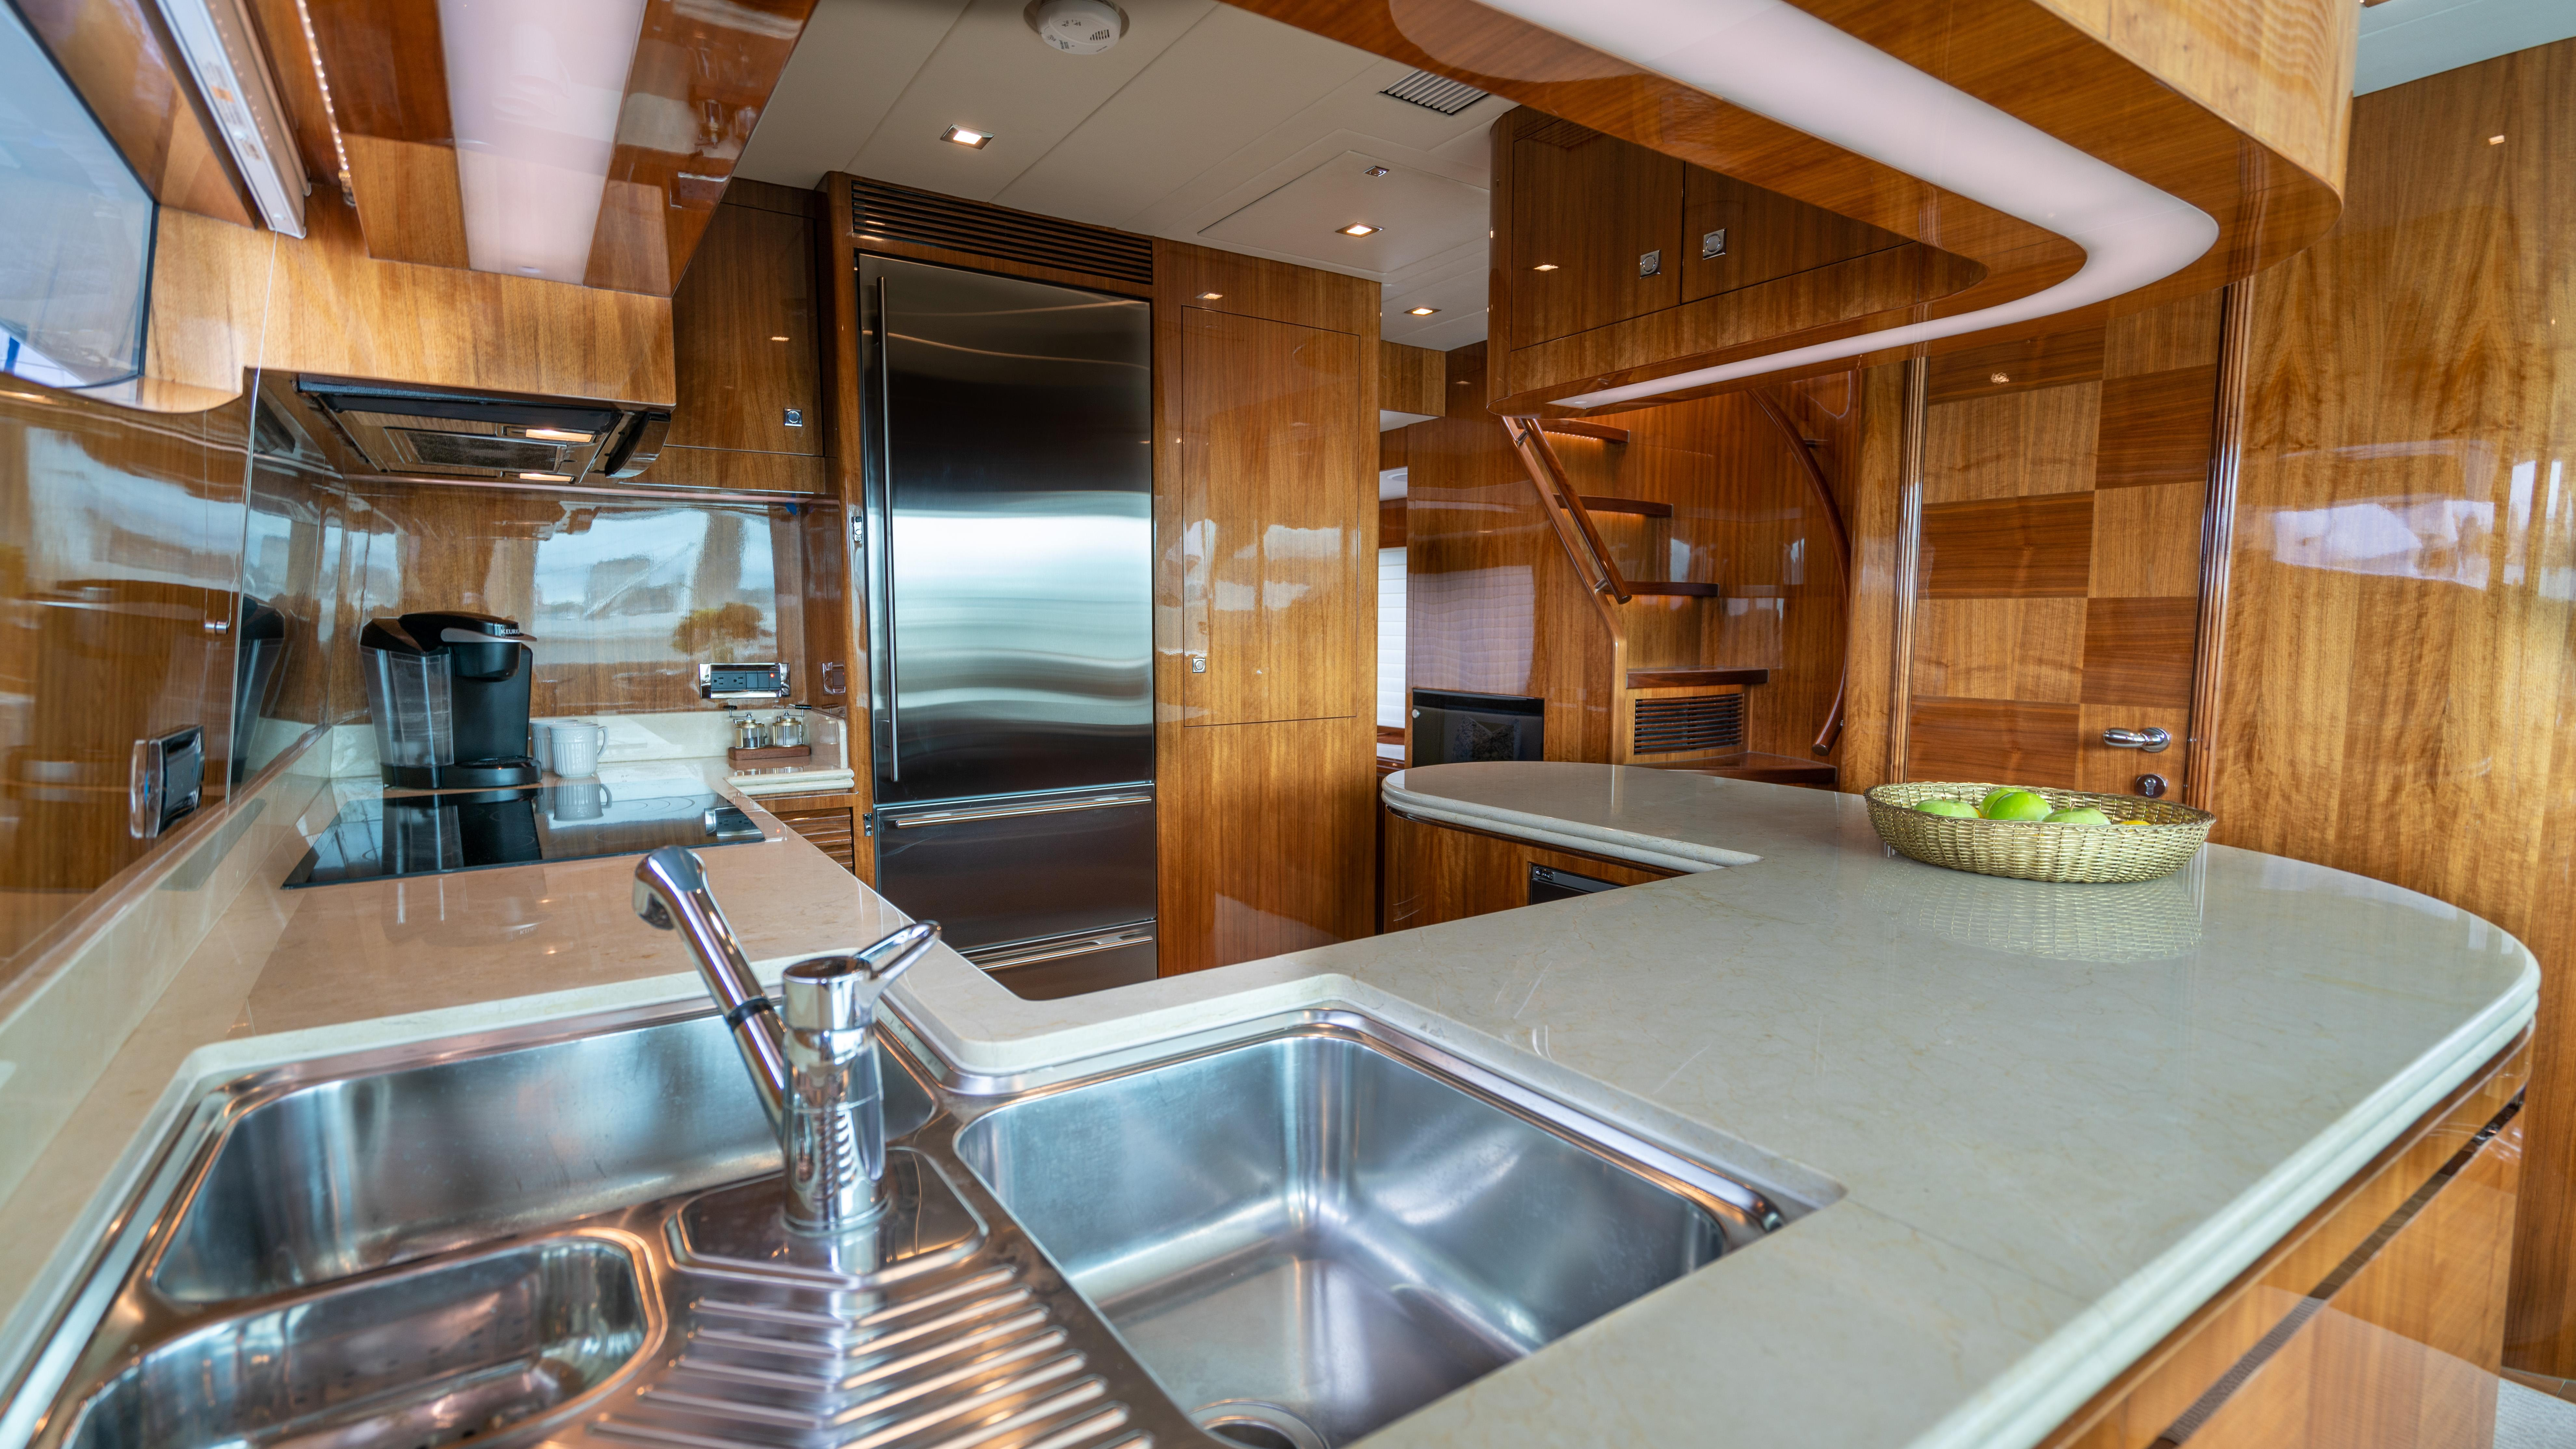 Galley, double sink